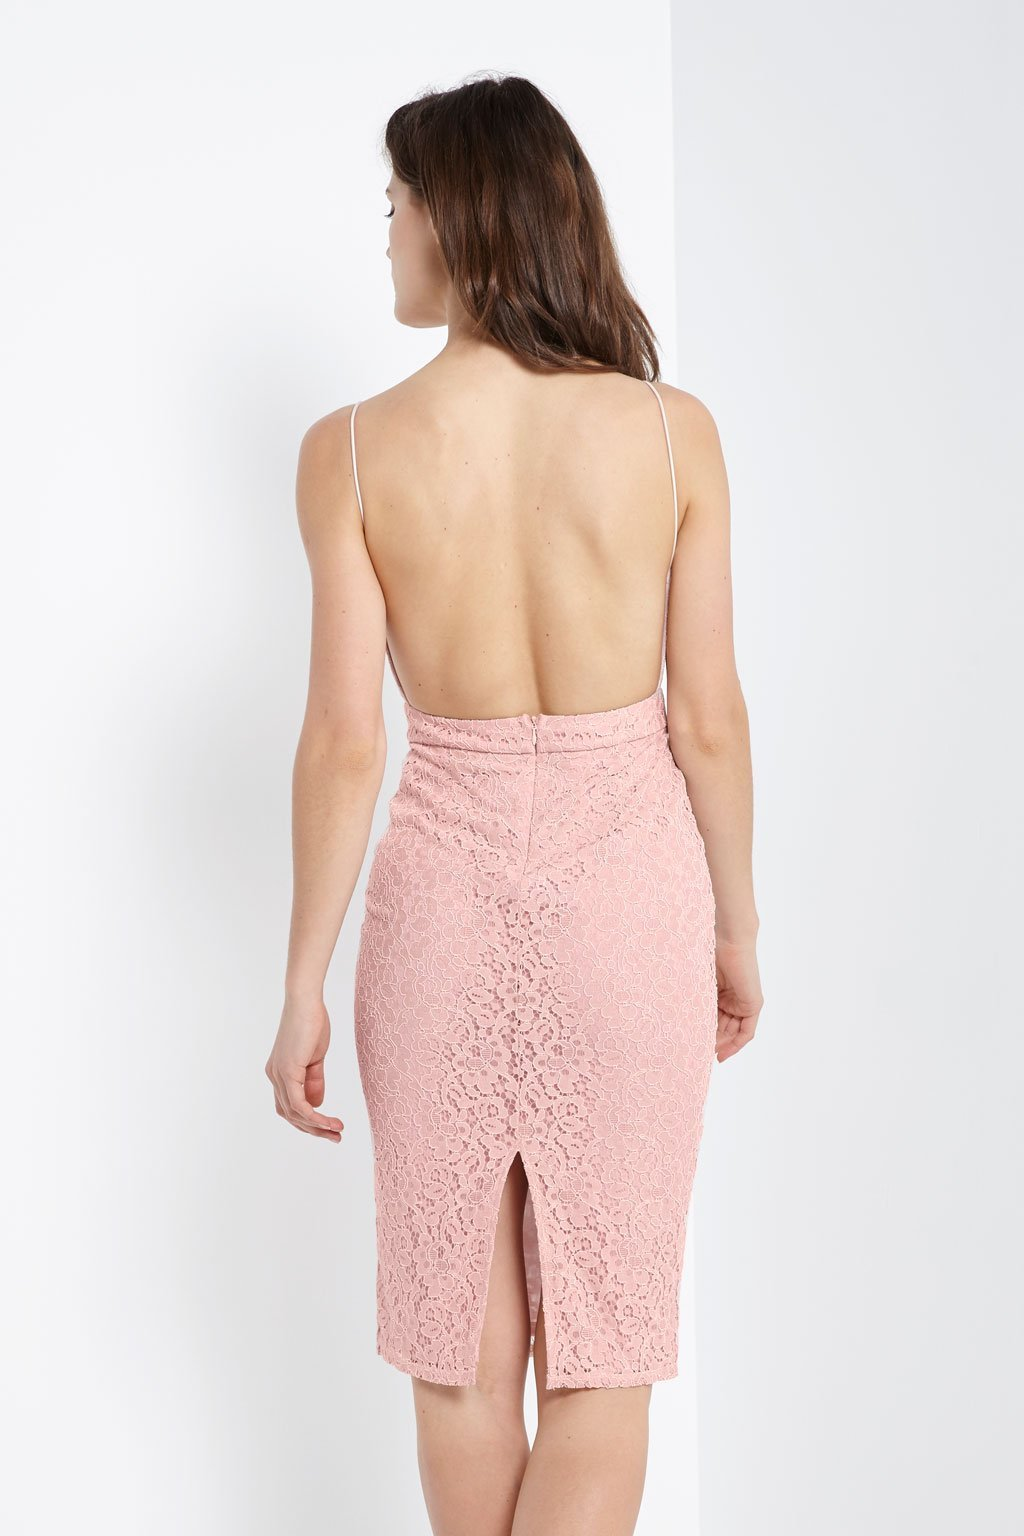 Poshsquare Dress Backless Lace Dress